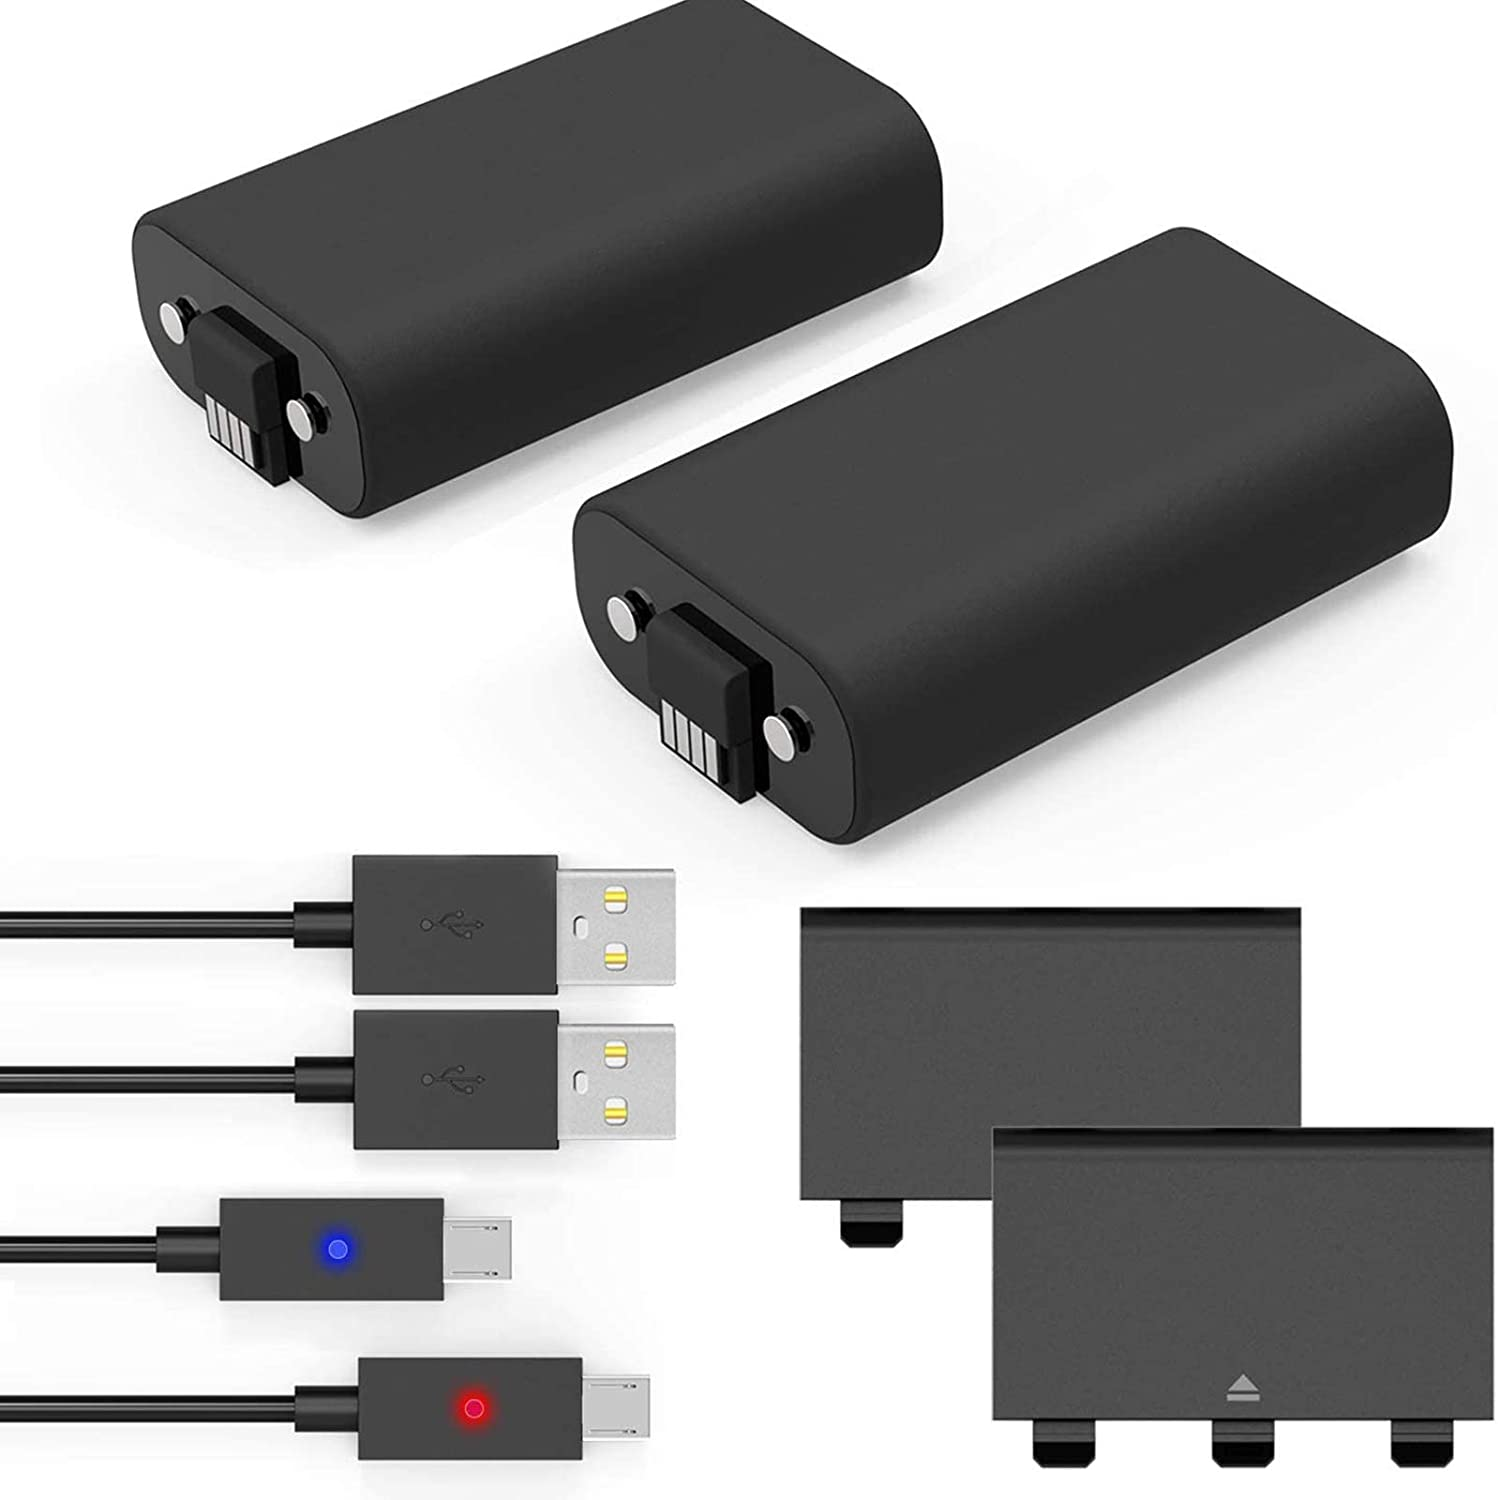 Amazon Com Xbox One Controller Battery Pack Xbox Rechargeable Battery Pack With 2 Pack 1200mah Xbox Battery Pack With Led Indicator 5ft Micro Usb Charging Cable Xbox One Charge And Play For Xbox